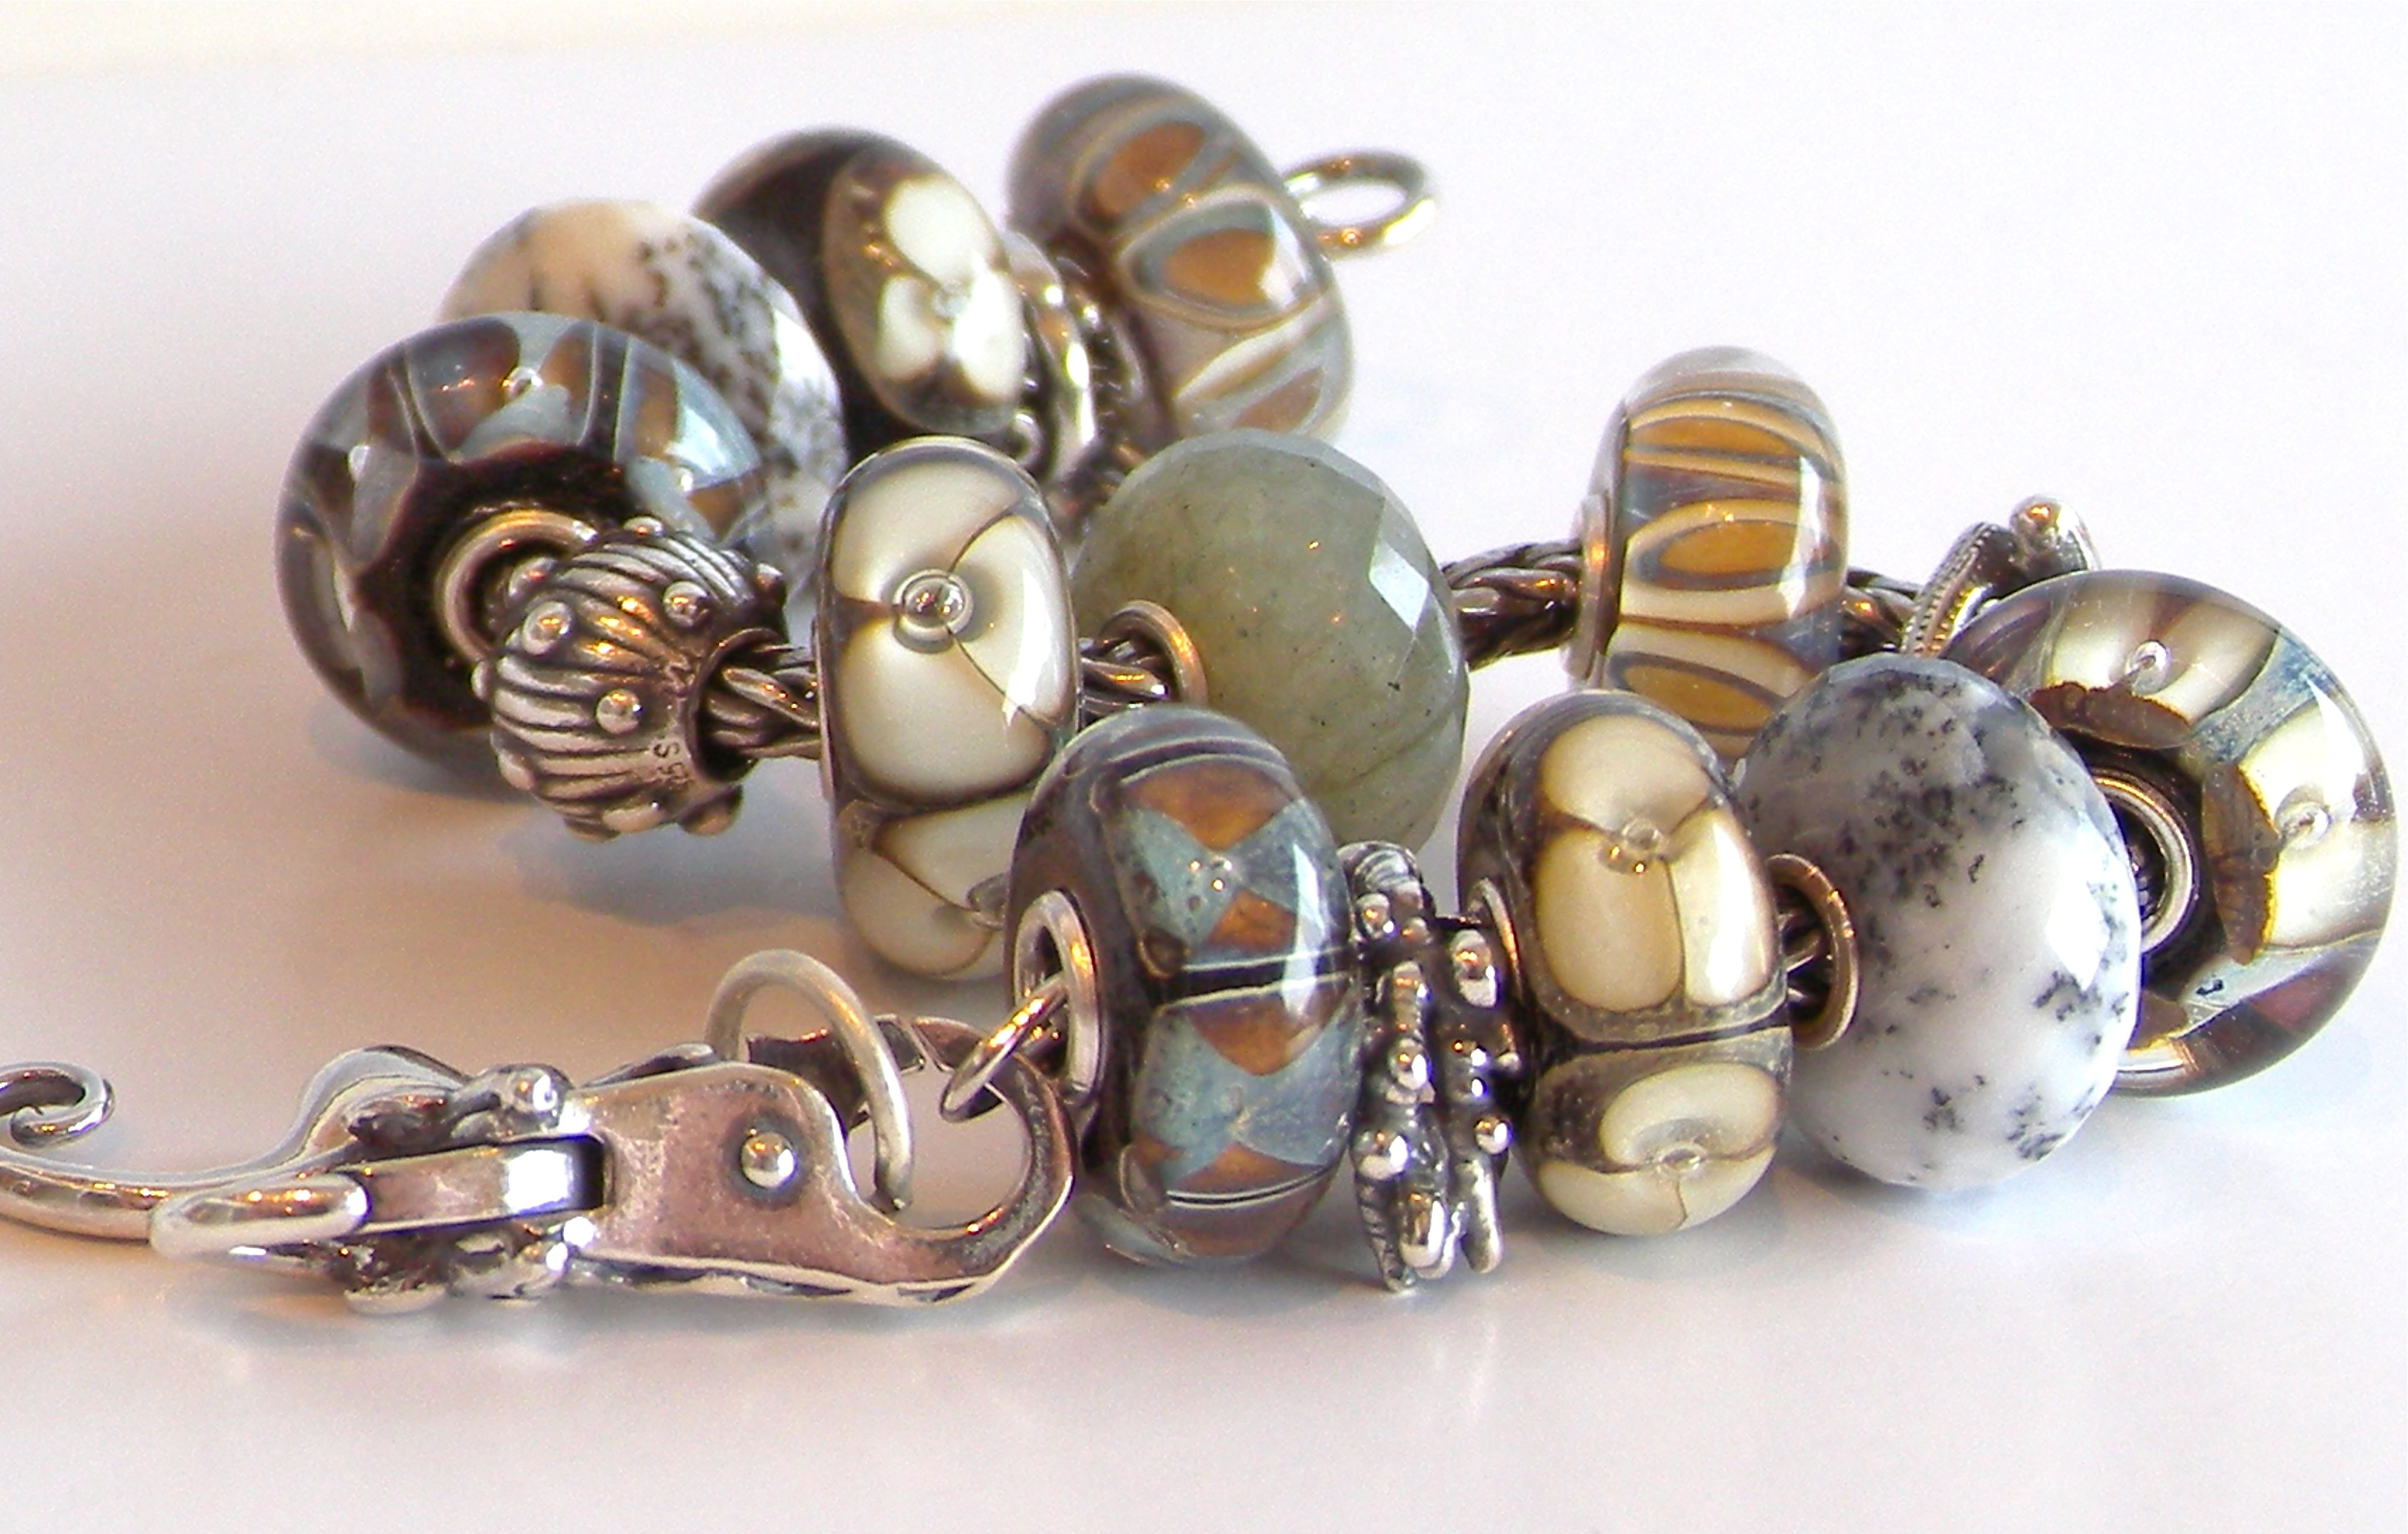 Spring 2013 Trollbeads - love the look but not the price. :-/